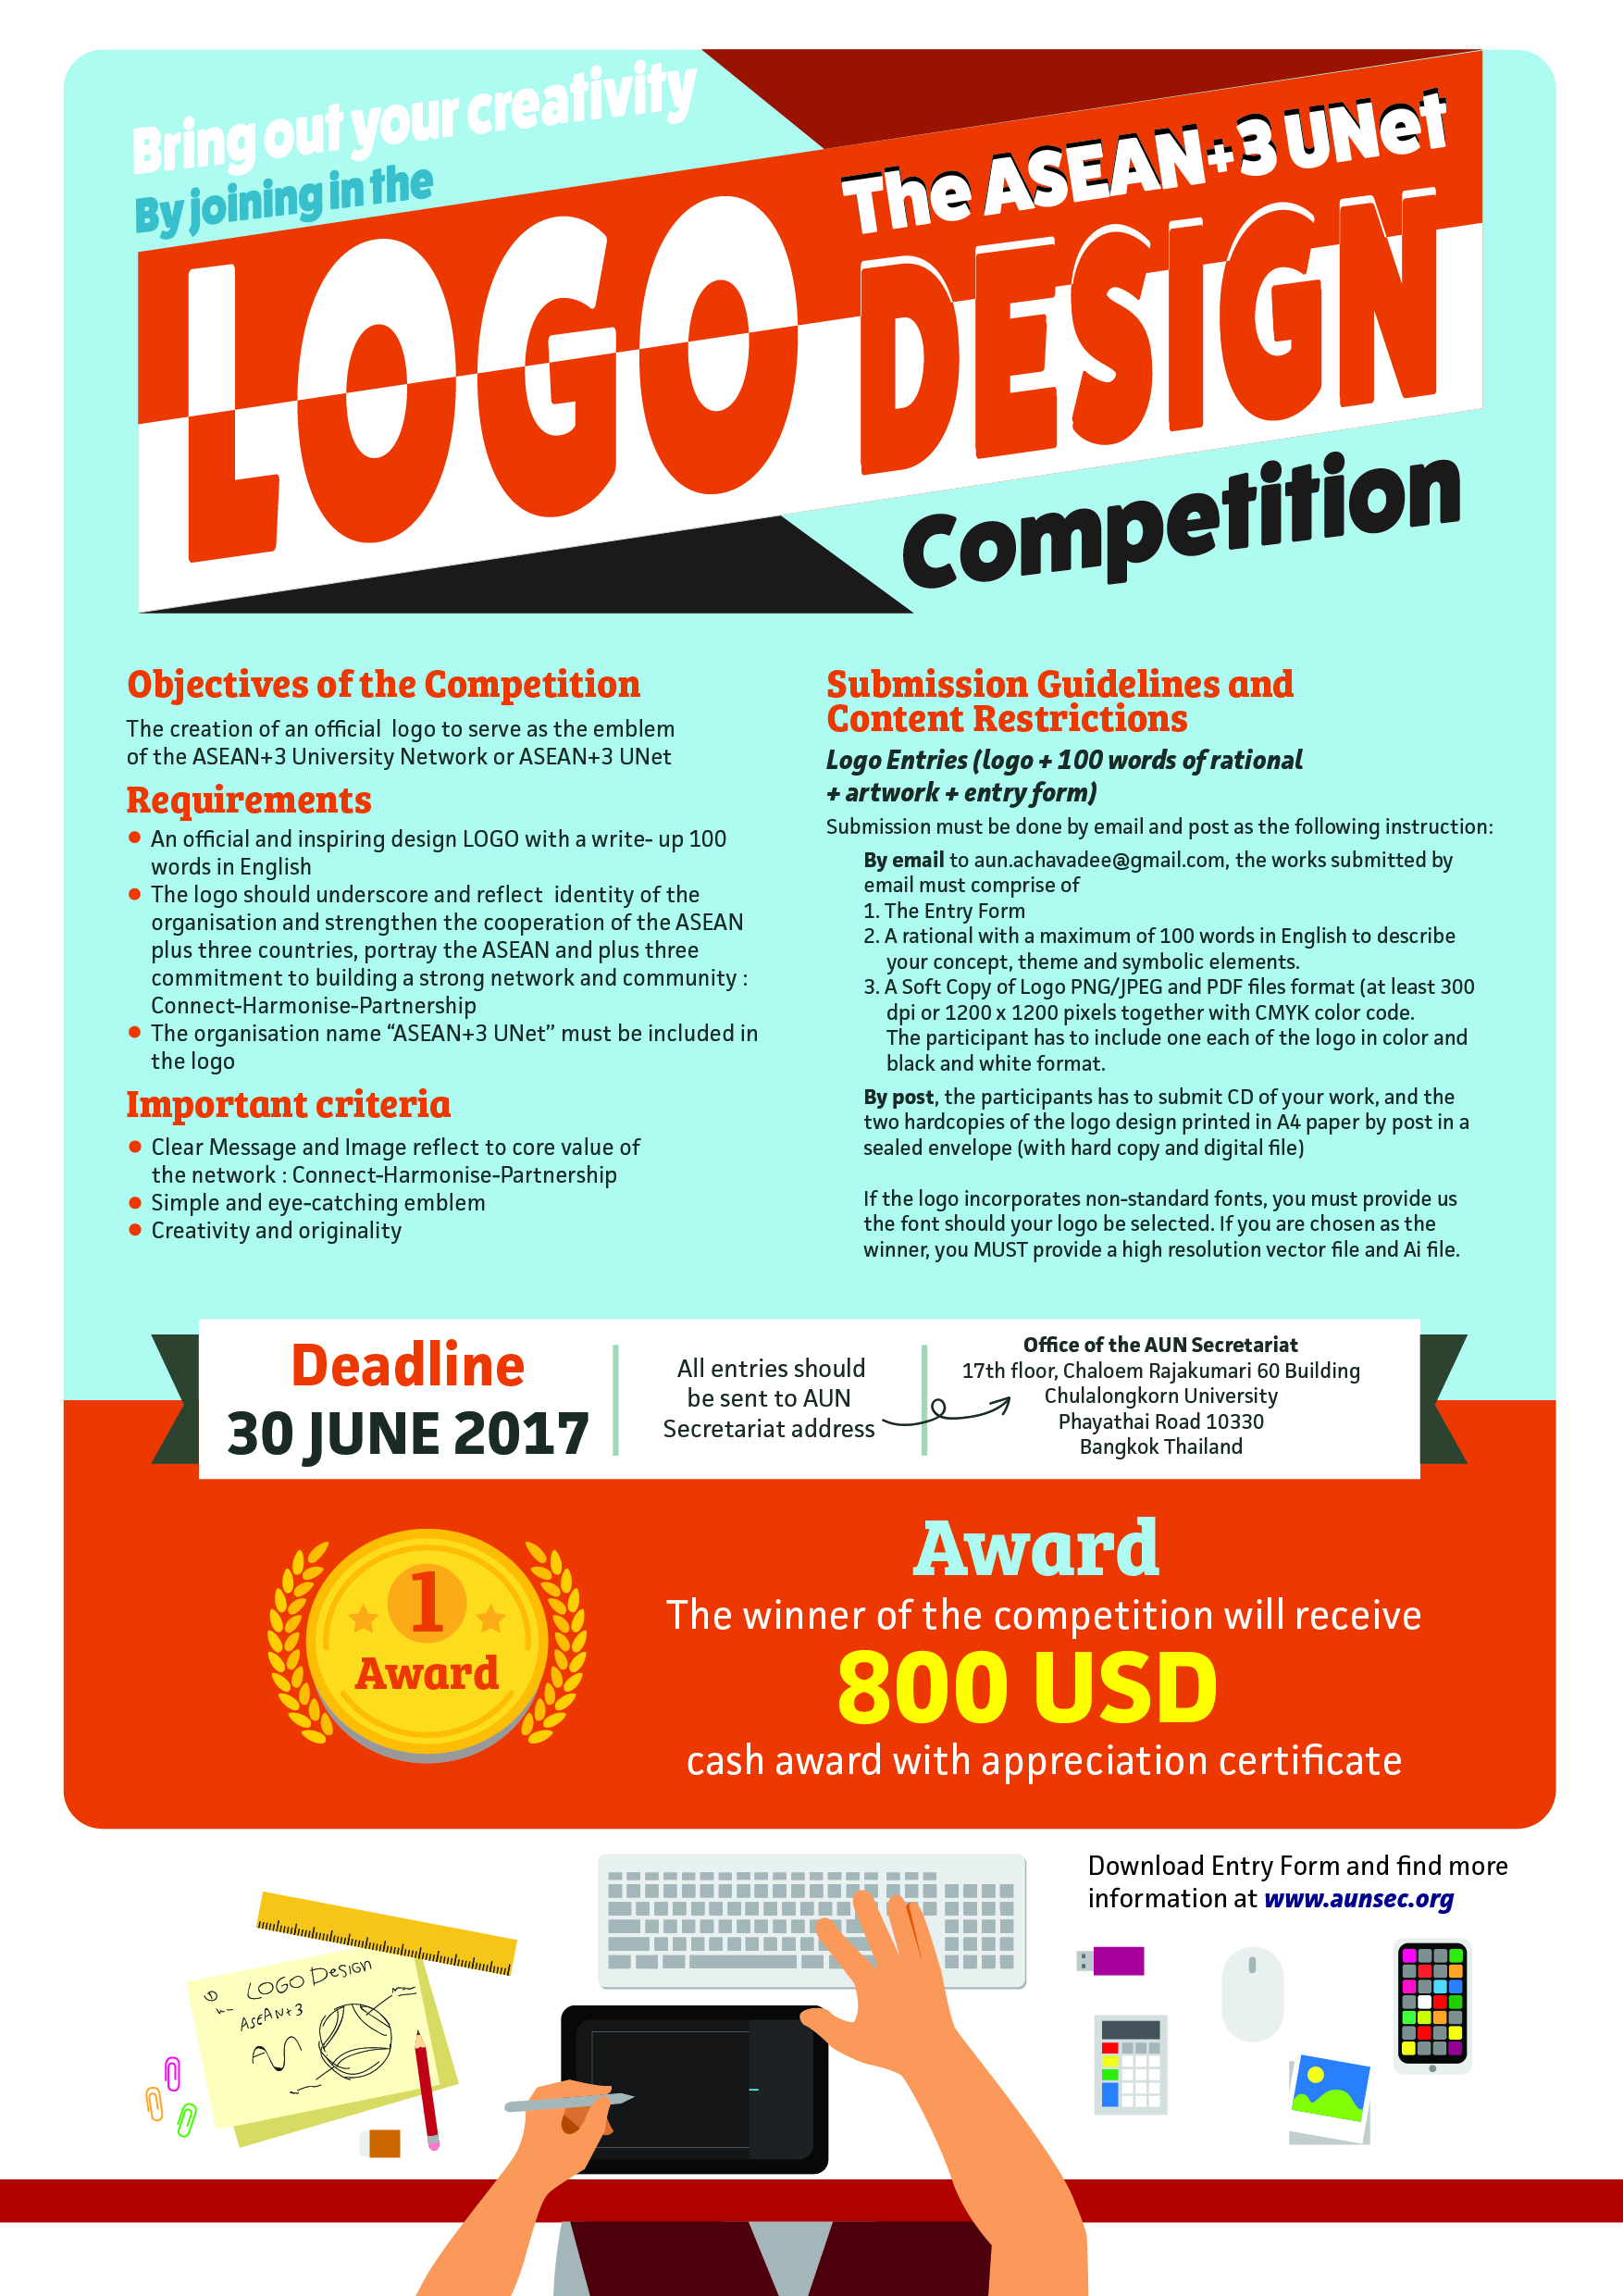 Announcement call for participation in asean 3 unet logo Logo design competitions